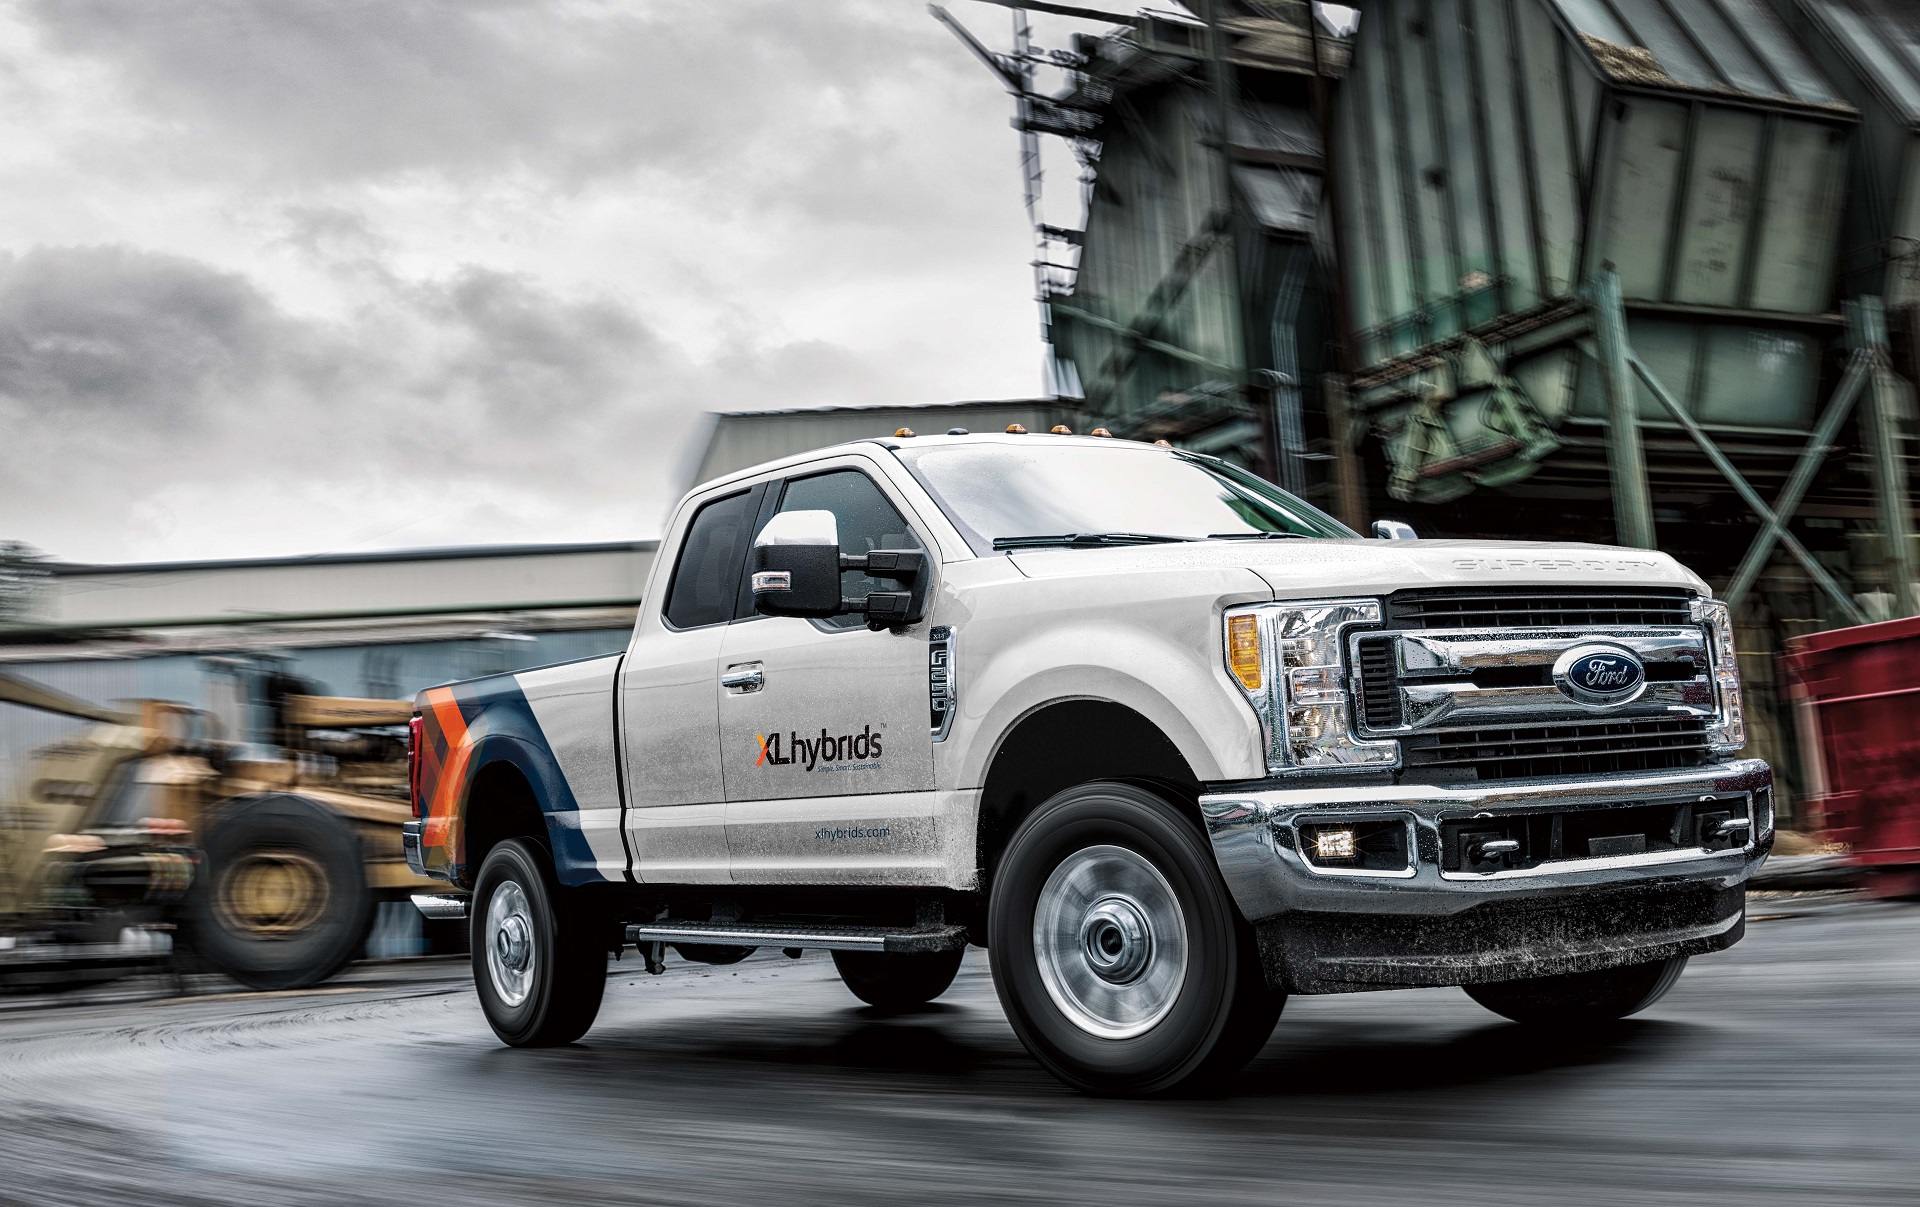 hight resolution of xl hybrids adds ford f 250 hybrid to f 150 plug in hybrid pickups production to start in march